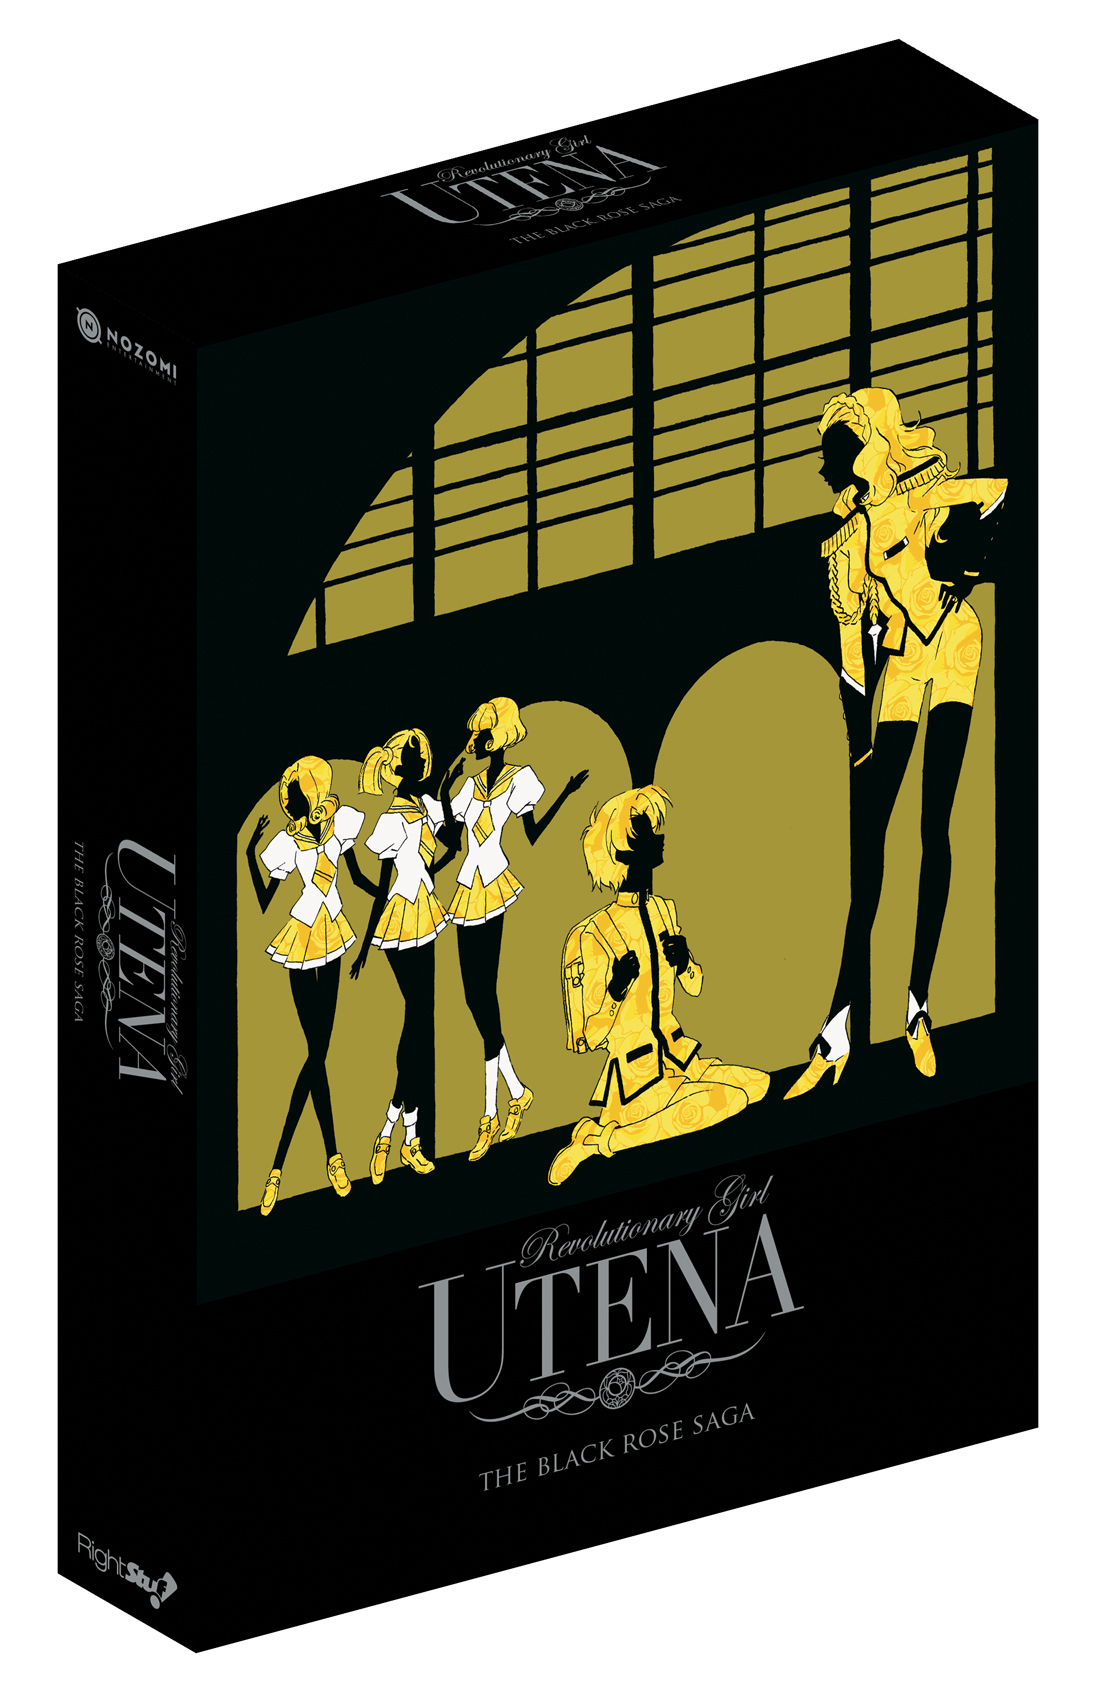 Revolutionary Girl Utena Set 2 Limited Edition DVD